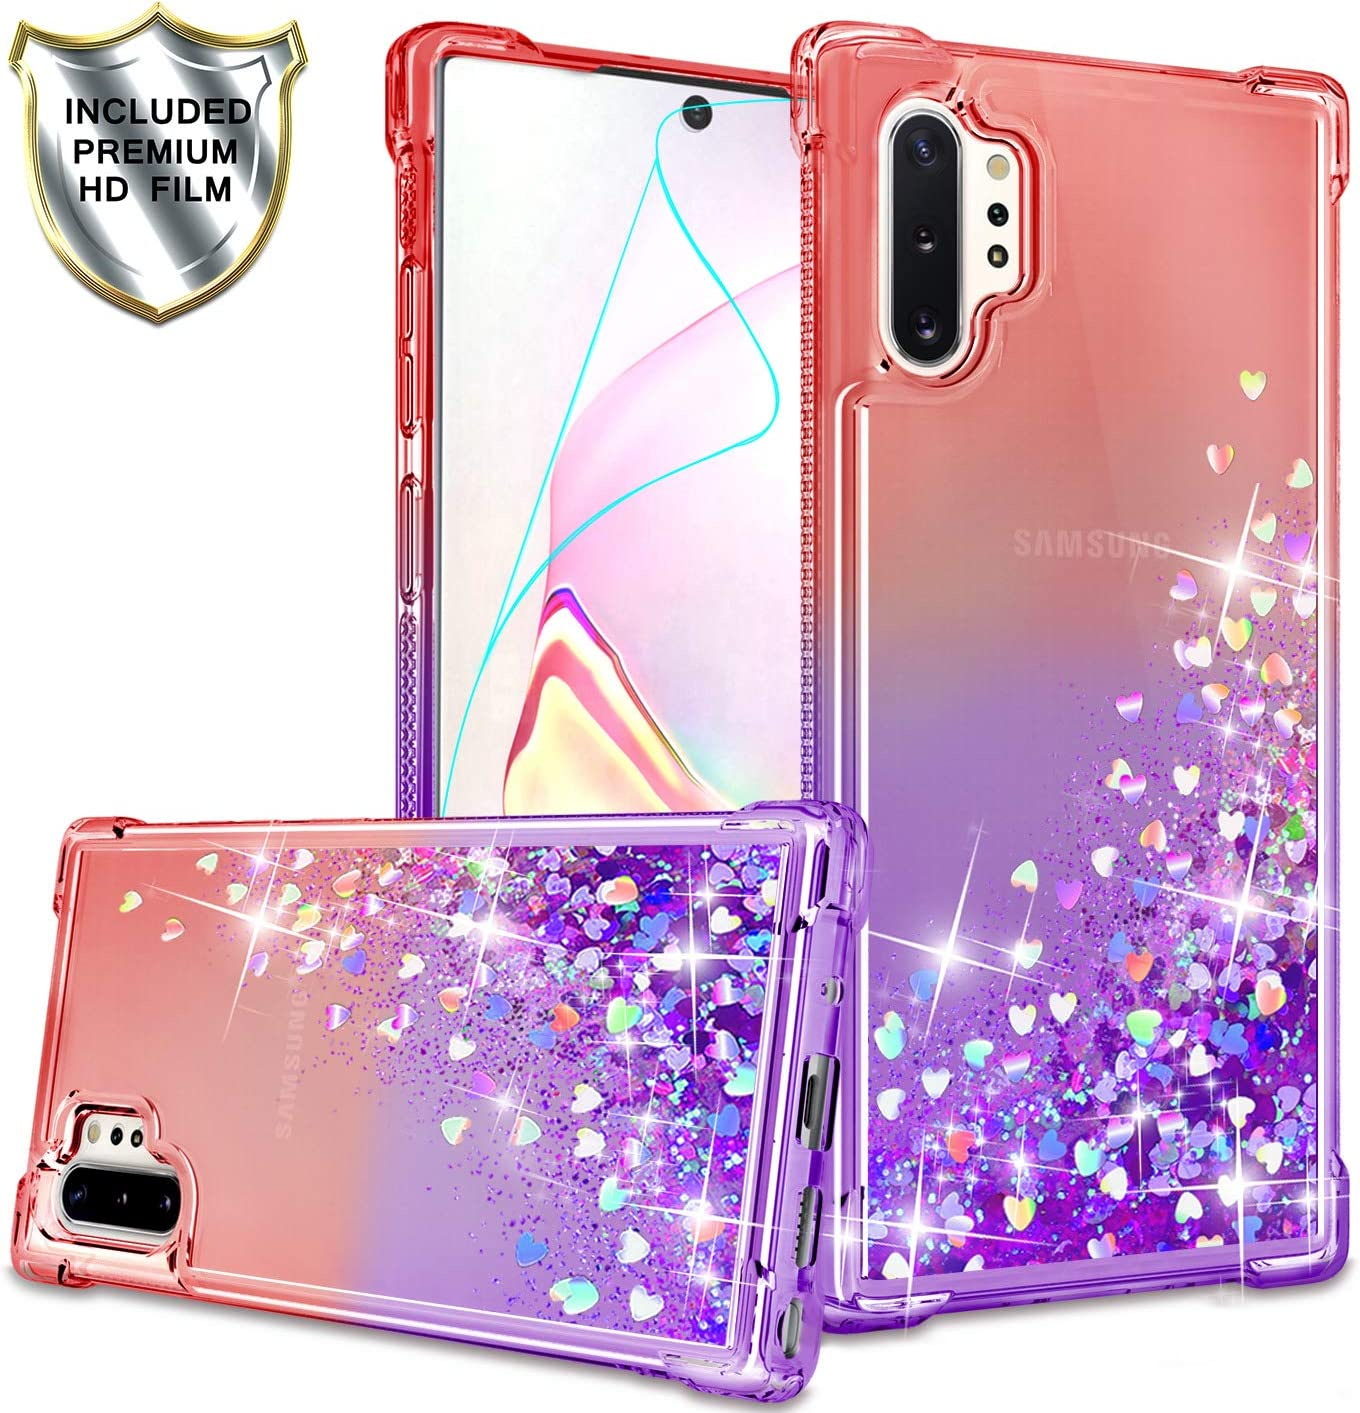 Gritup Galaxy Note 10 Plus Case, Galaxy Note 10+ 5G Case with HD Screen Protector for Girls Women, Cute Clear Gradient Glitter Liquid TPU Slim Phone Case for Samsung Galaxy Note 10 Plus Red/Purple